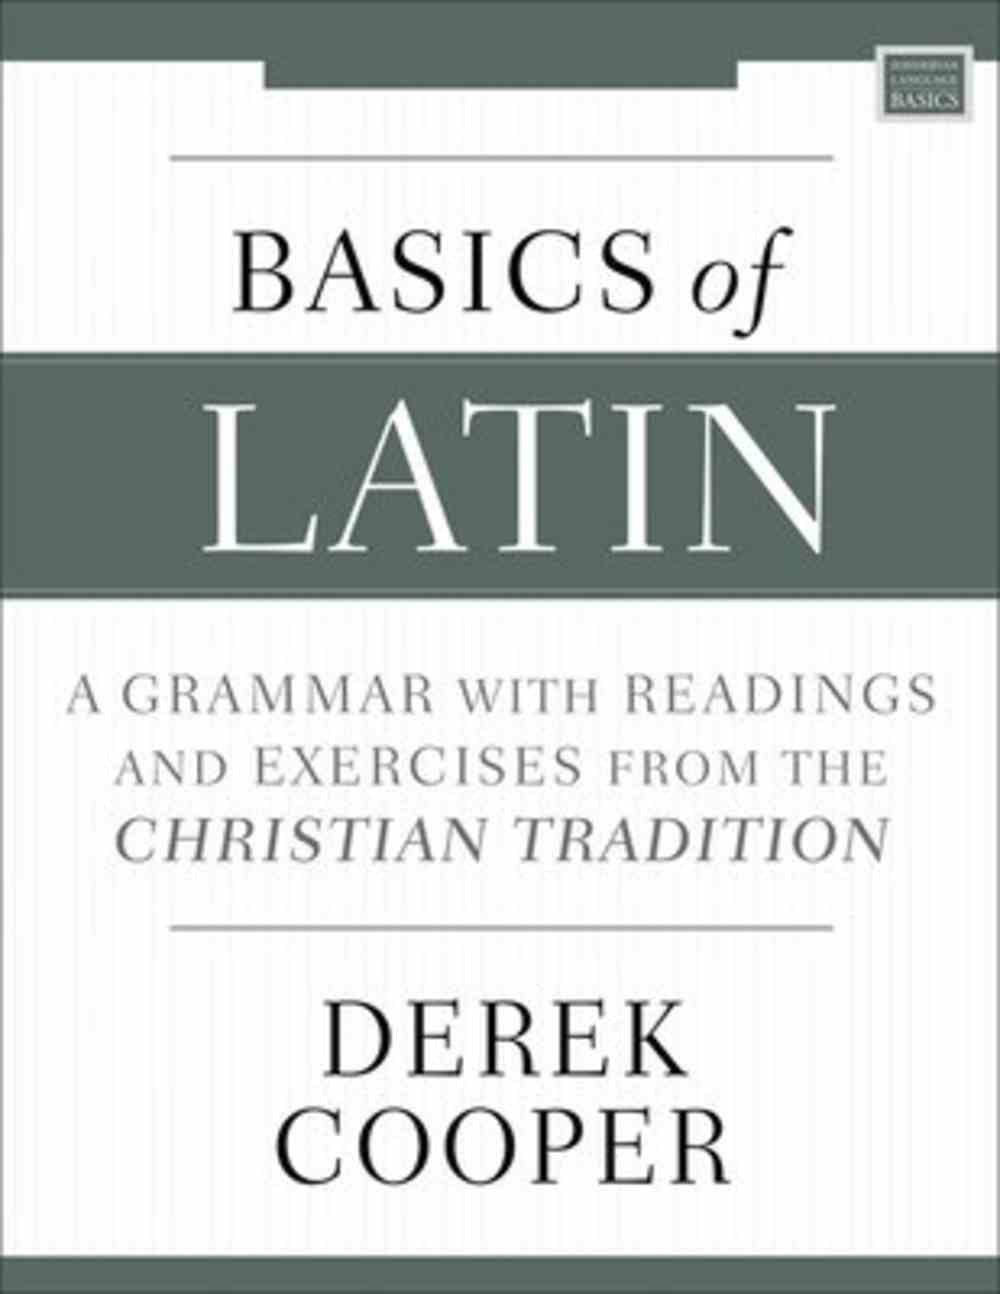 Basics of Latin: A Grammar With Readings and Exercises From the Christian Tradition Paperback